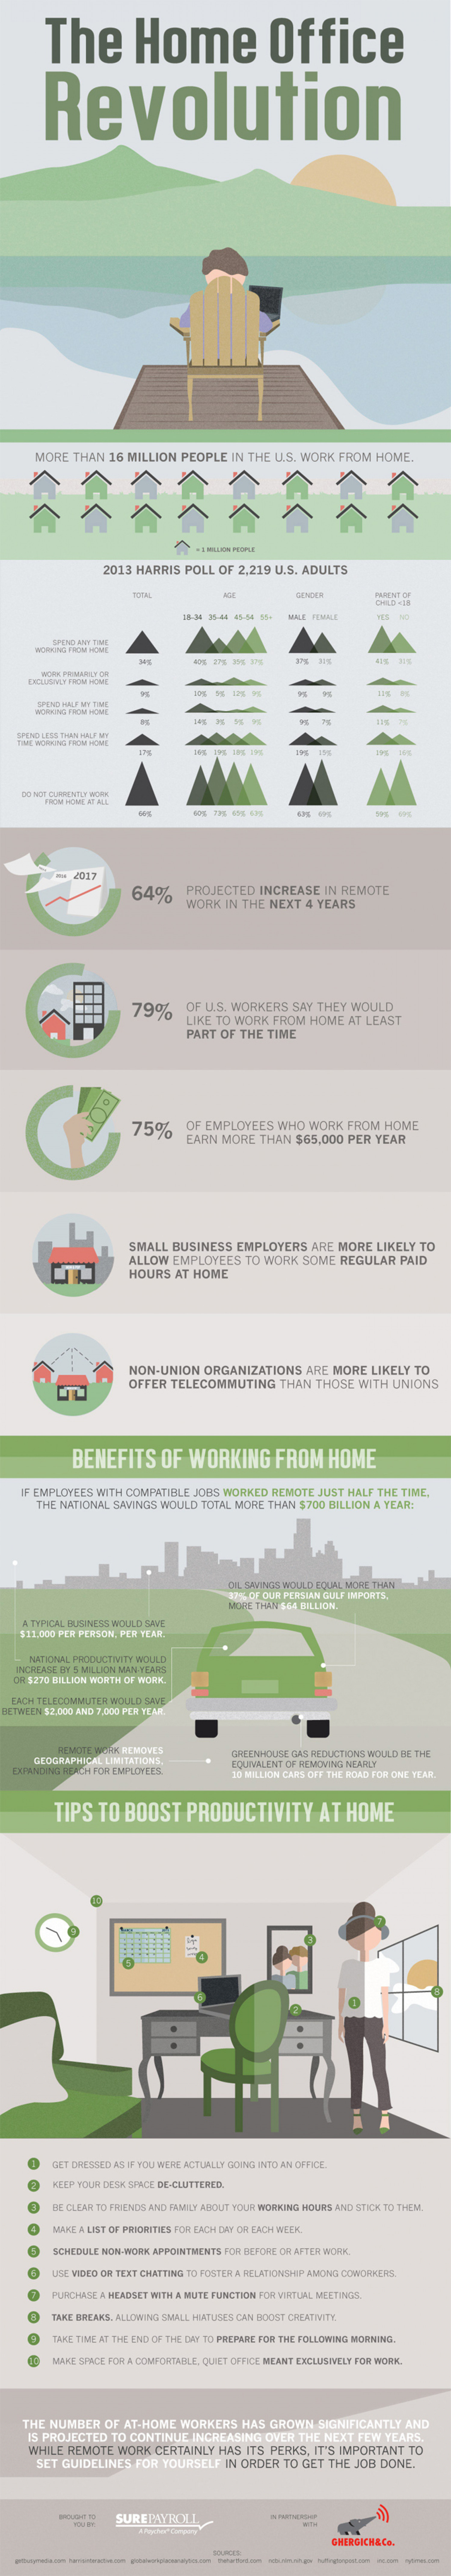 The Home Office Revolution Infographic